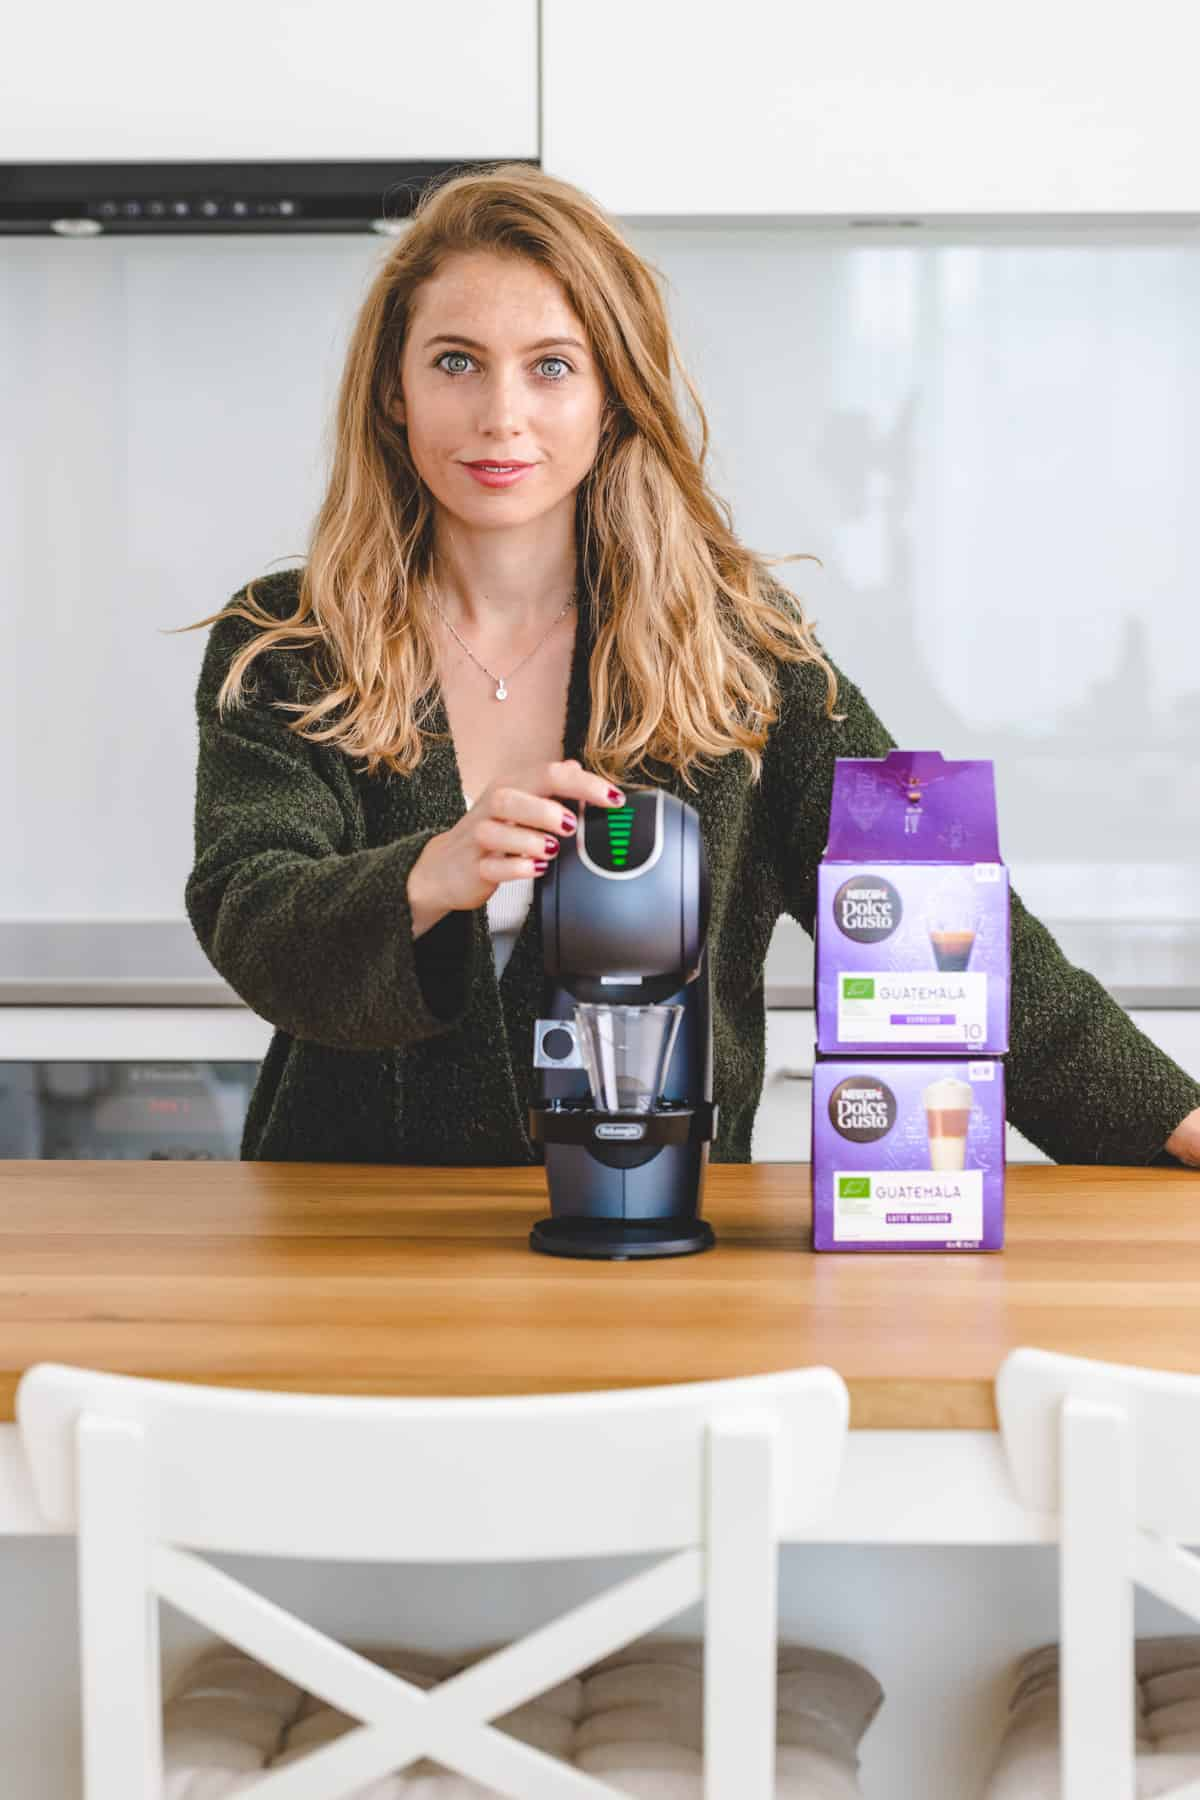 aline cueni next to the new genio s touch by NESCAFÉ Dolce Gusto